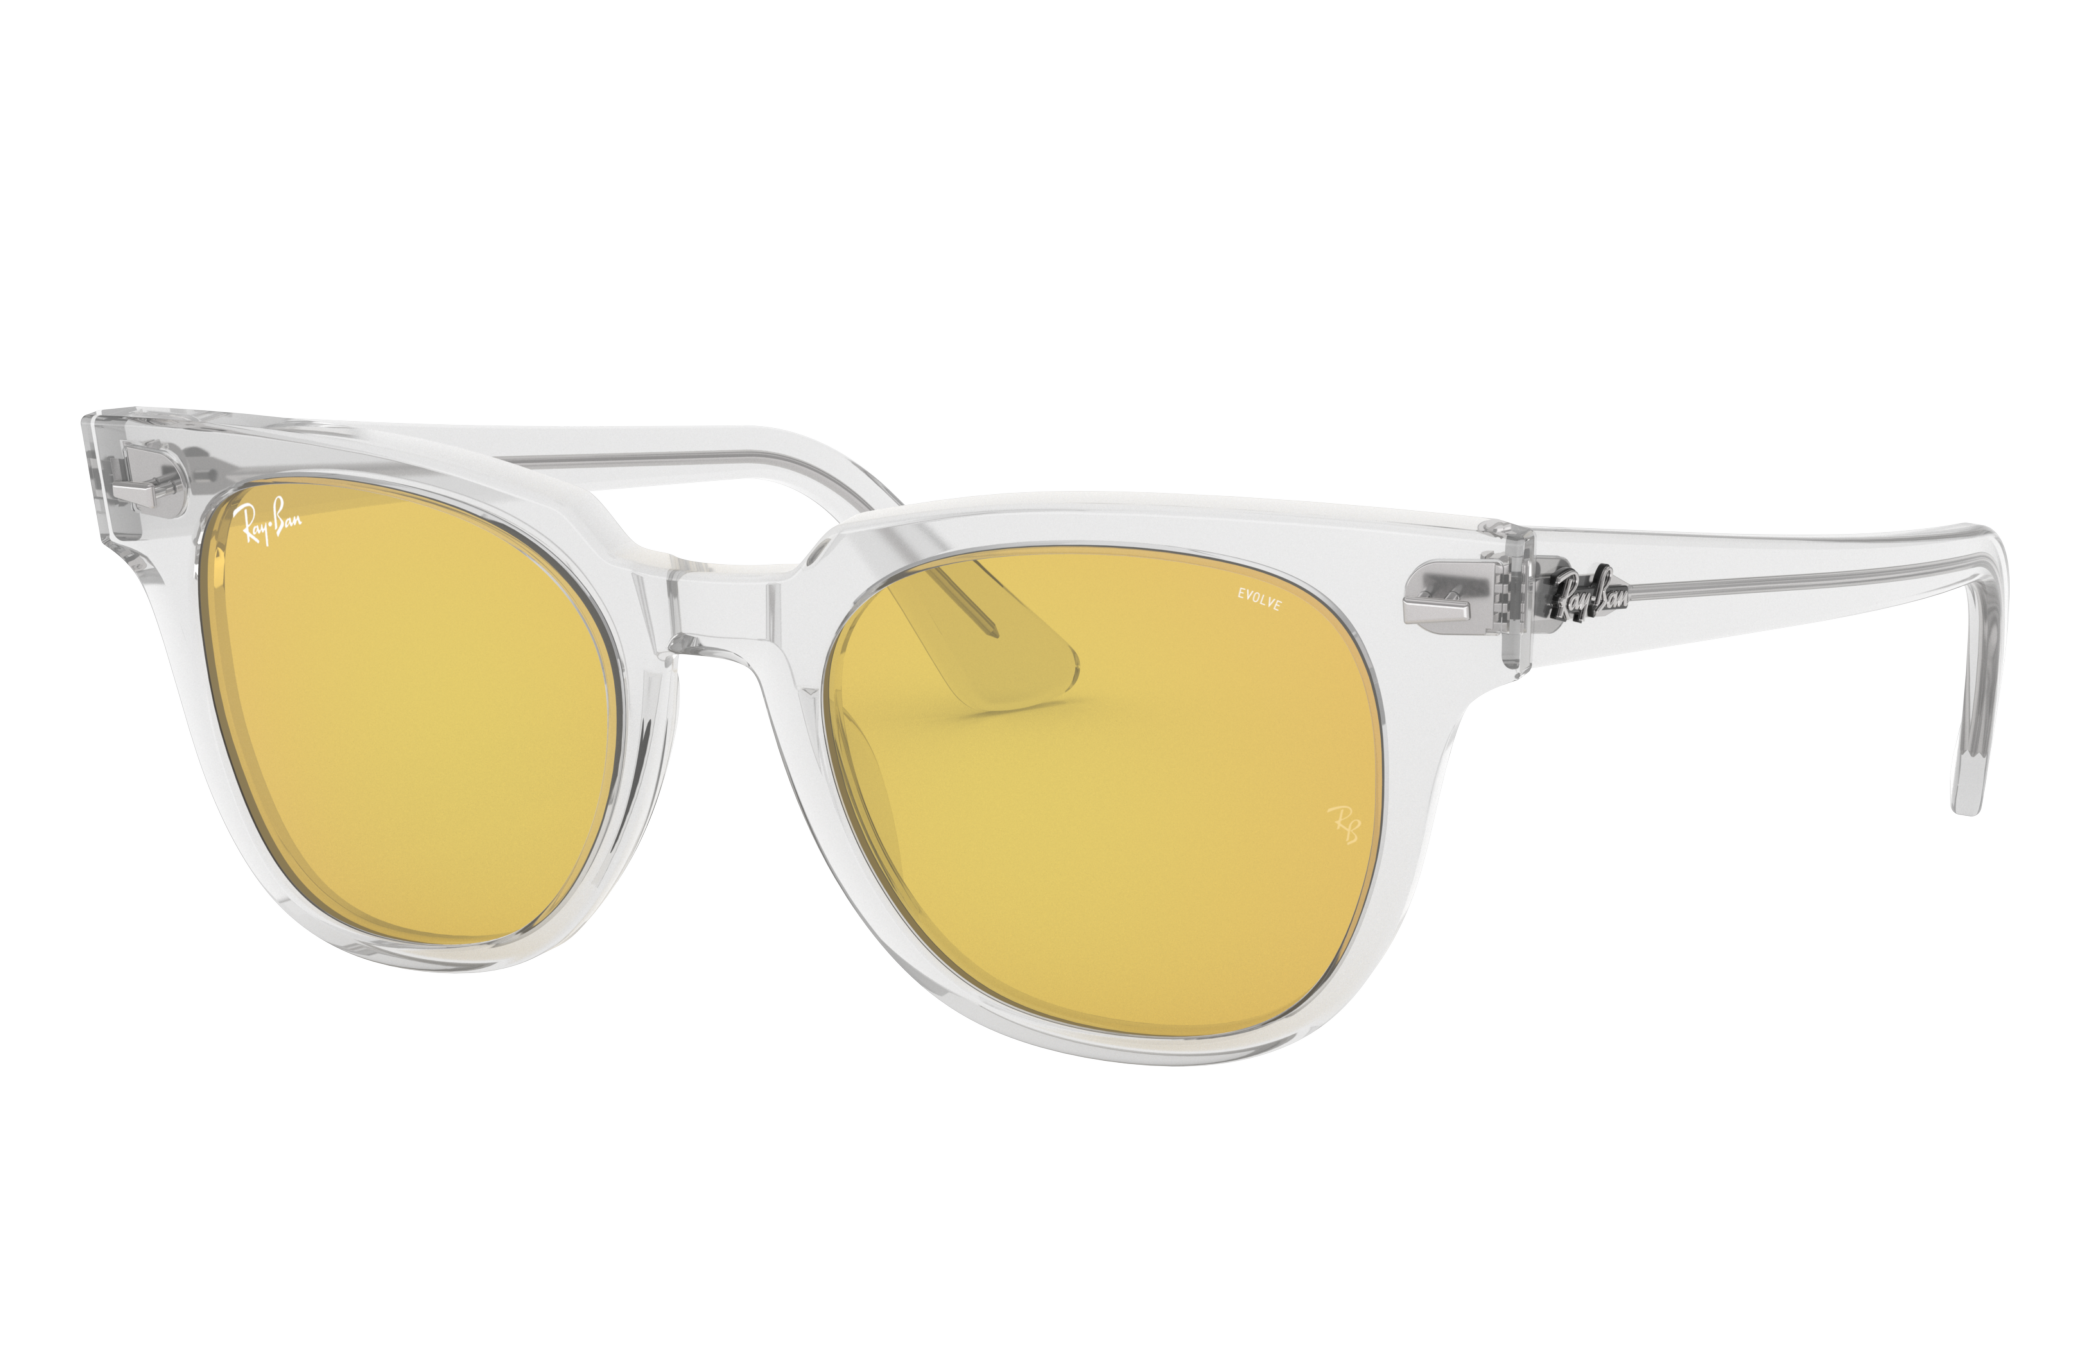 Ray-Ban Meteor Washed Evolve Transparent, Yellow Lenses - RB2168